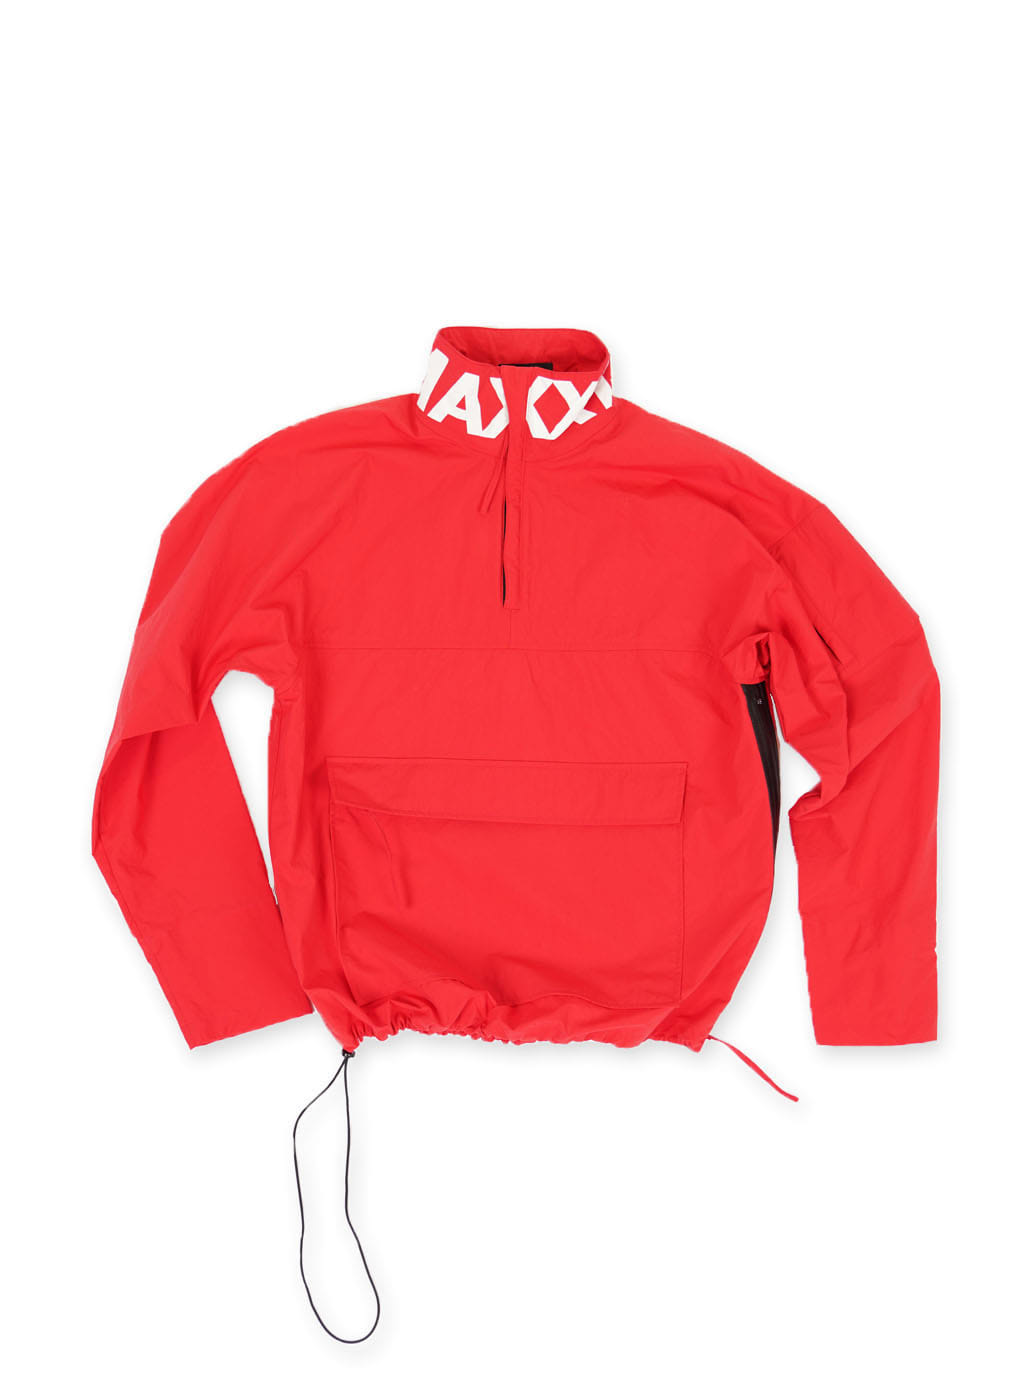 Red/White Anorak Jumper